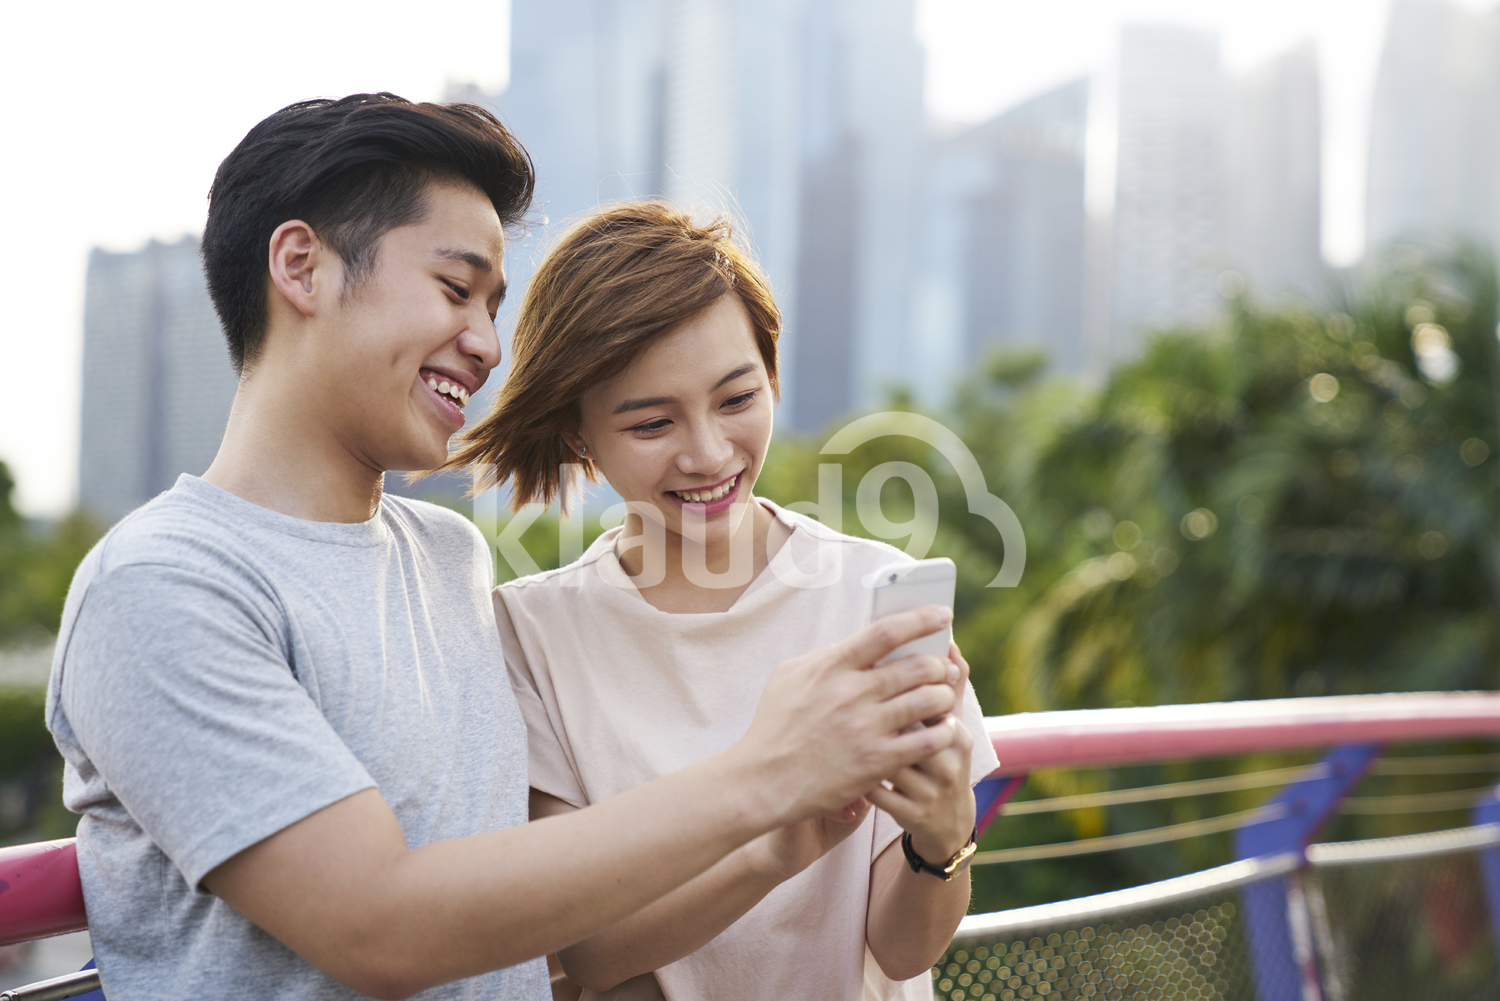 Smiley young couple taking a selfie at Gardens by the Bay, Singapore